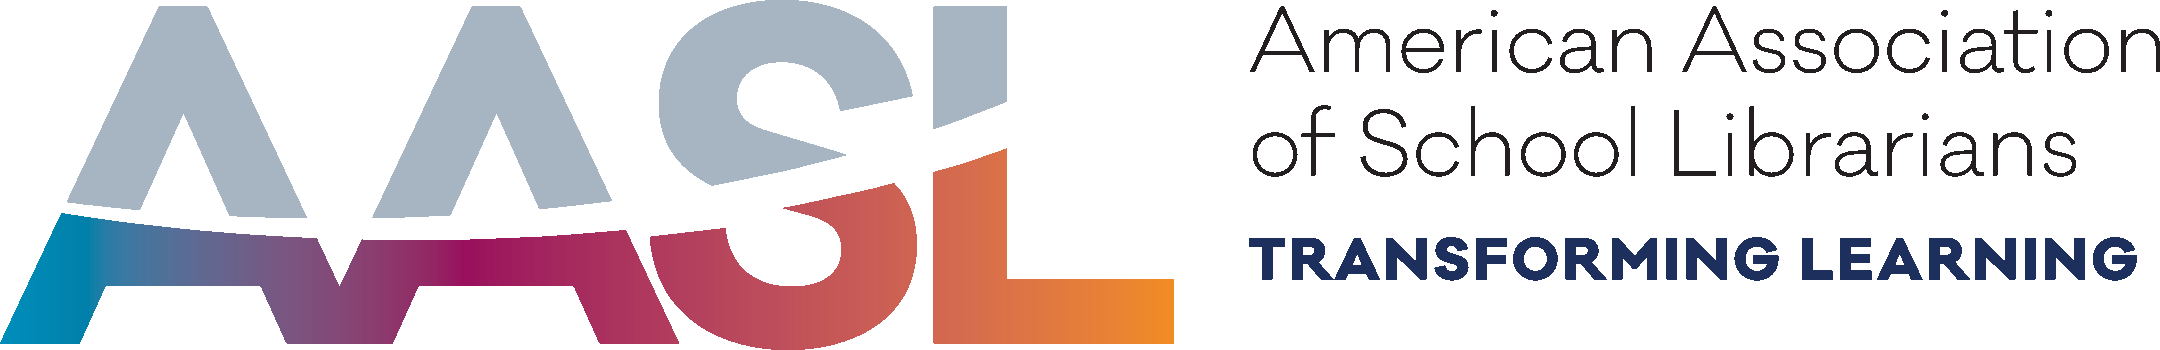 Logo of A.A.S.L. (the American Association of School Librarians)